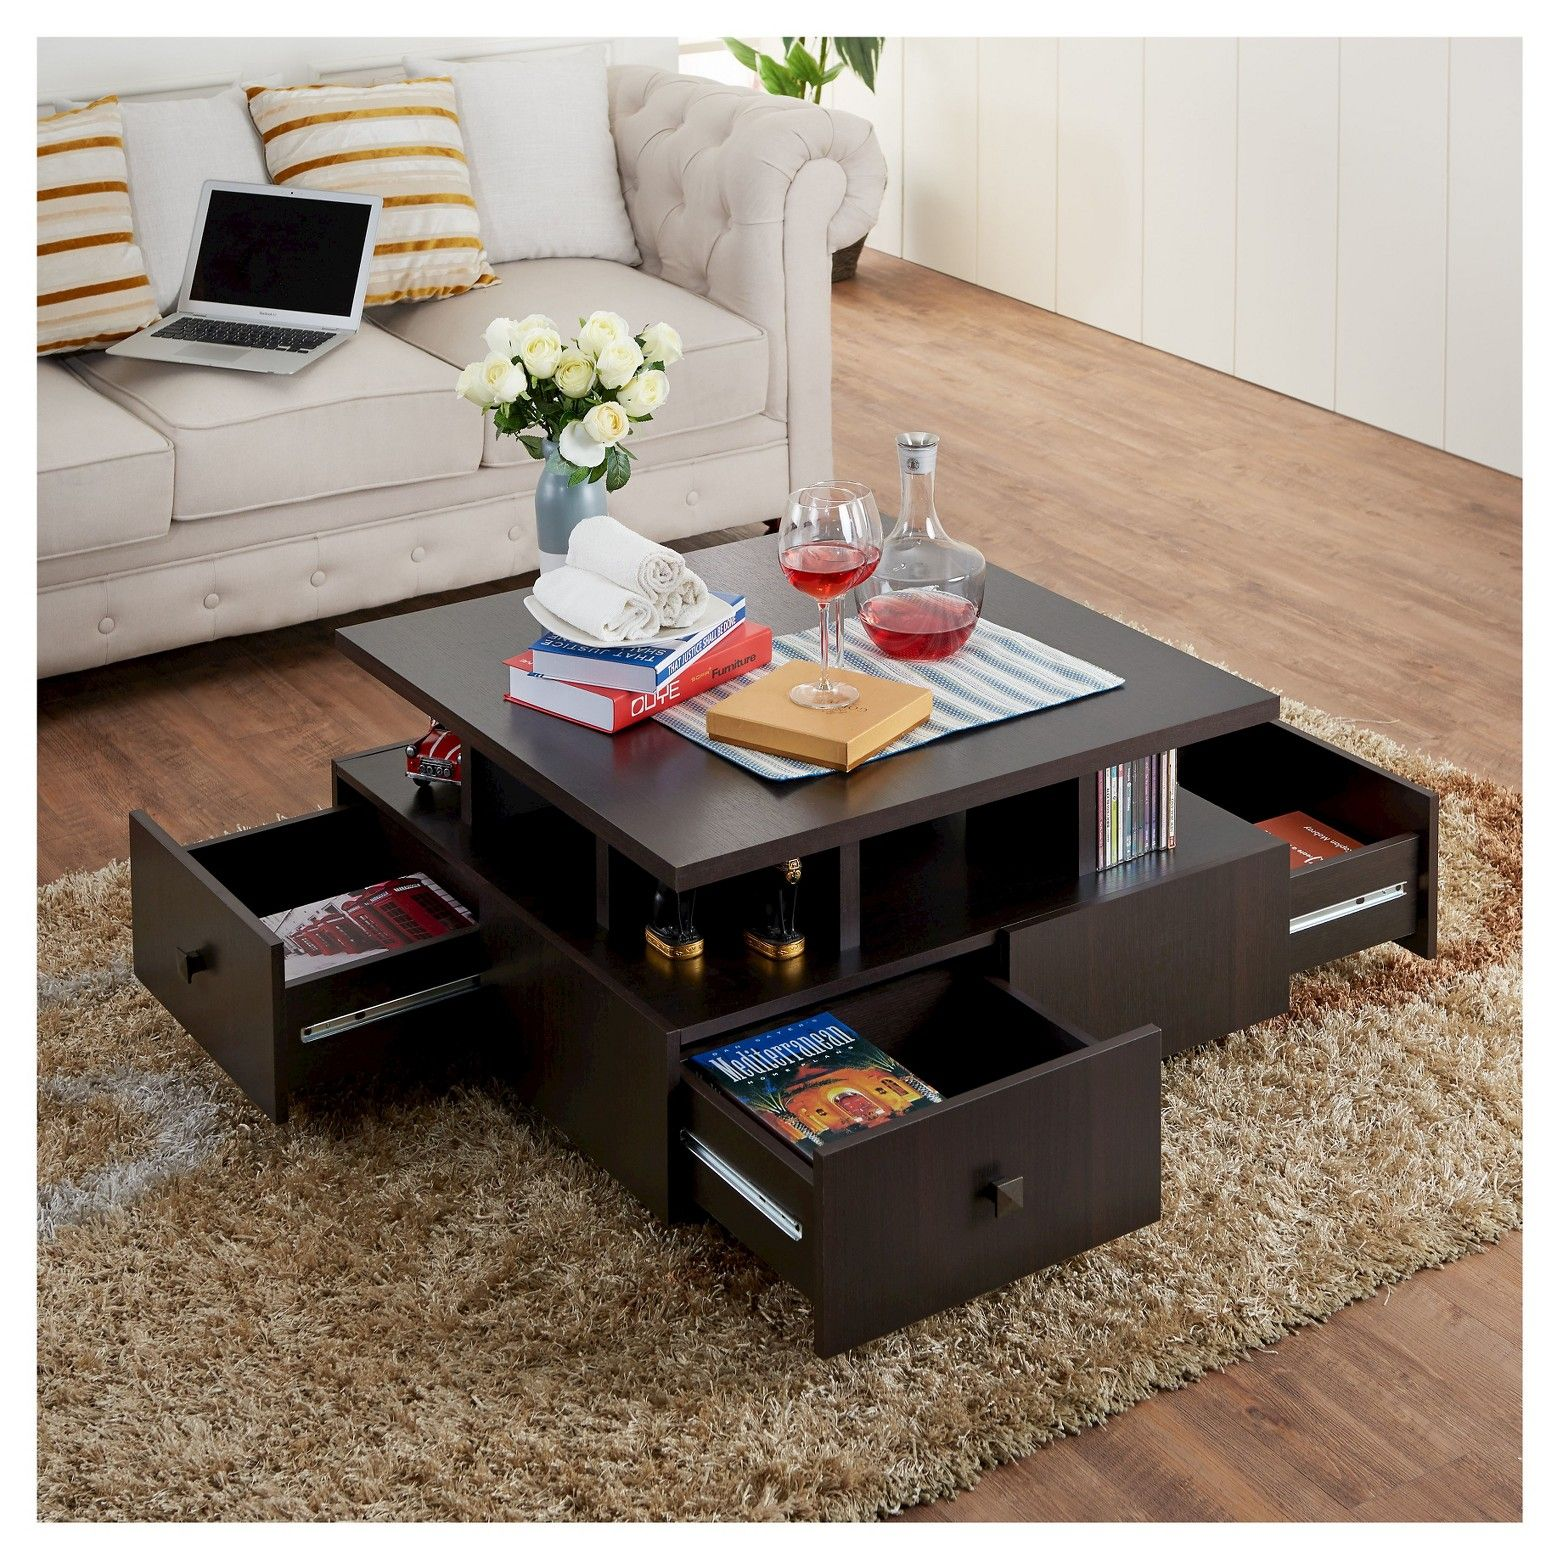 Campfield Modern Tiered Design Coffee Table Espresso Iohomes Coffee Table Coffee Table Square Vintage Home Decor